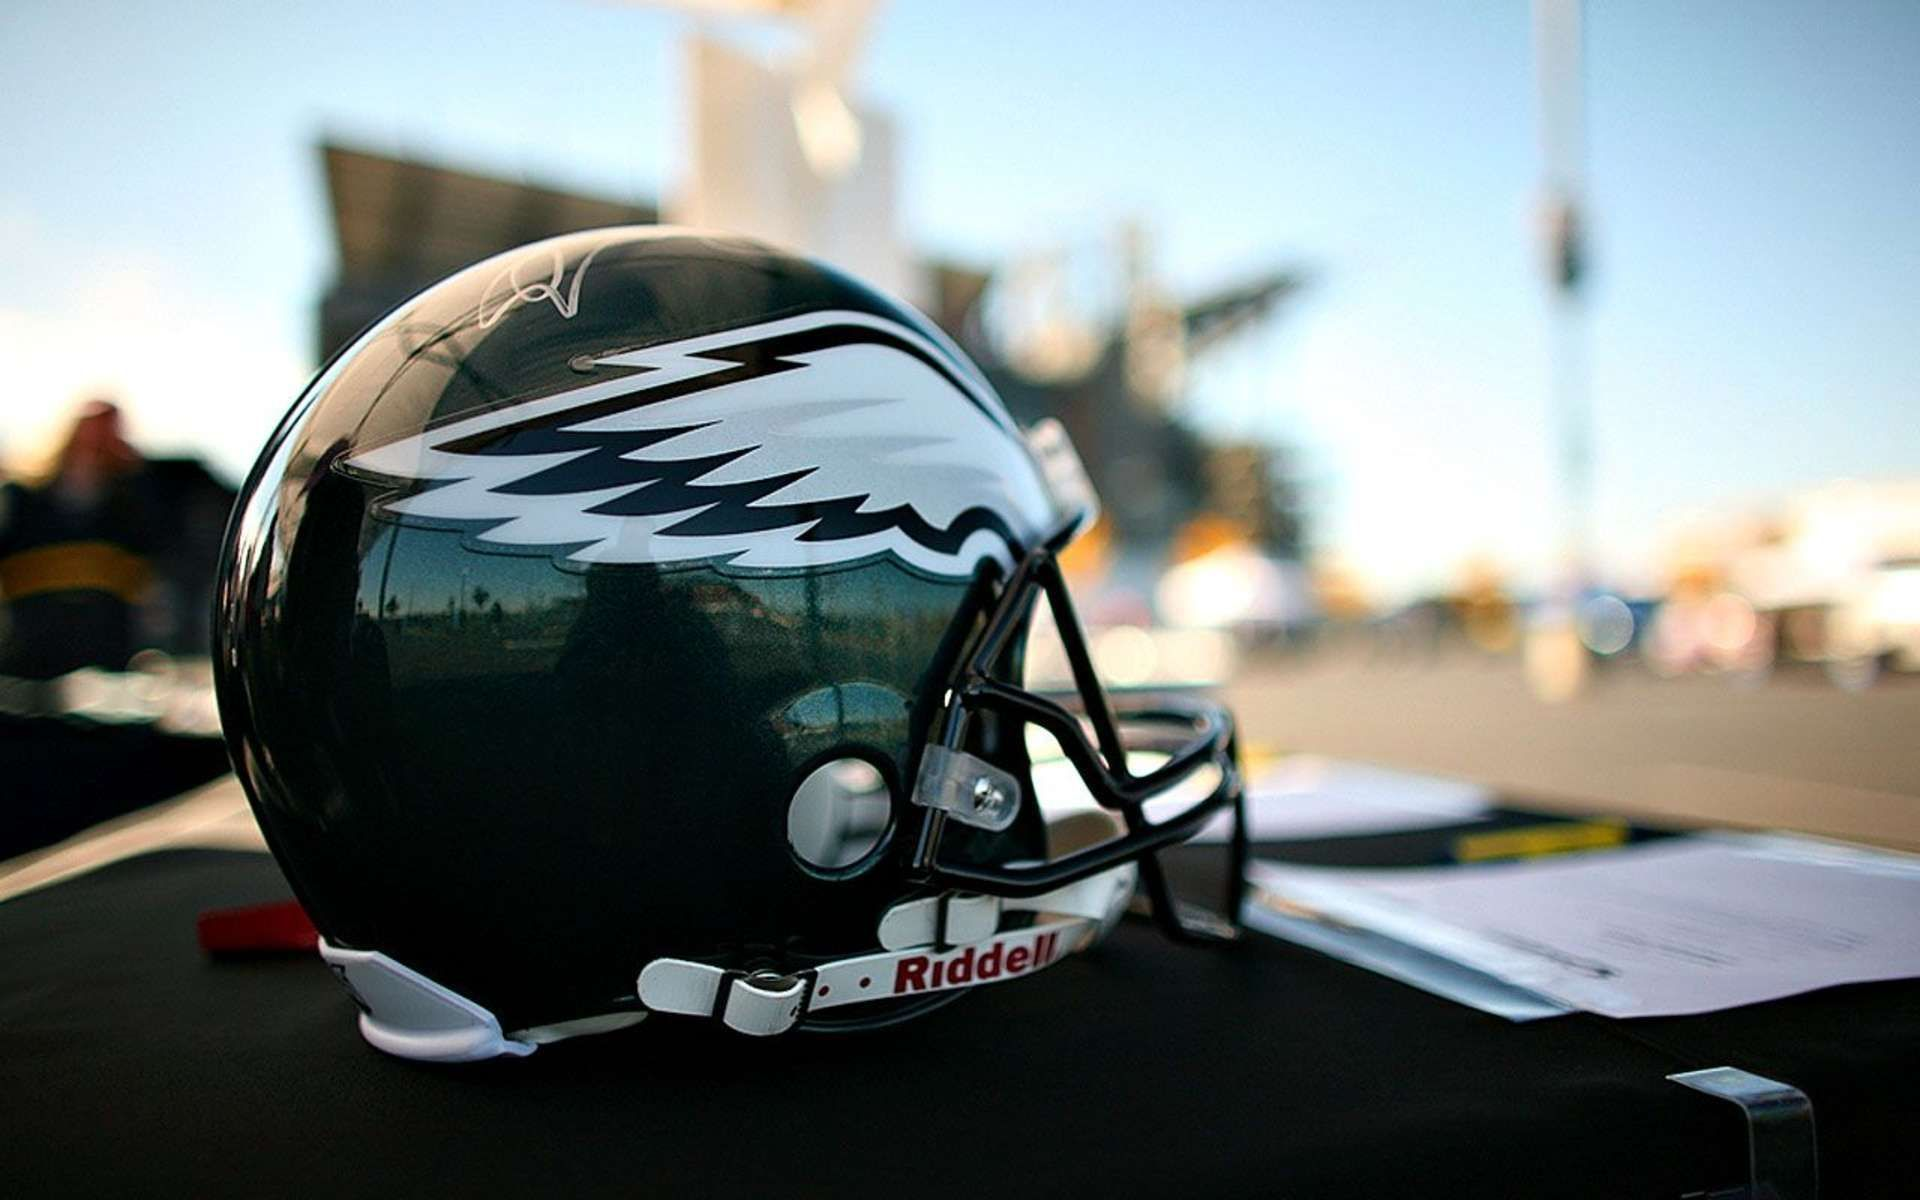 Philadelphia Eagles wallpaper Download Philadelphia Eagles